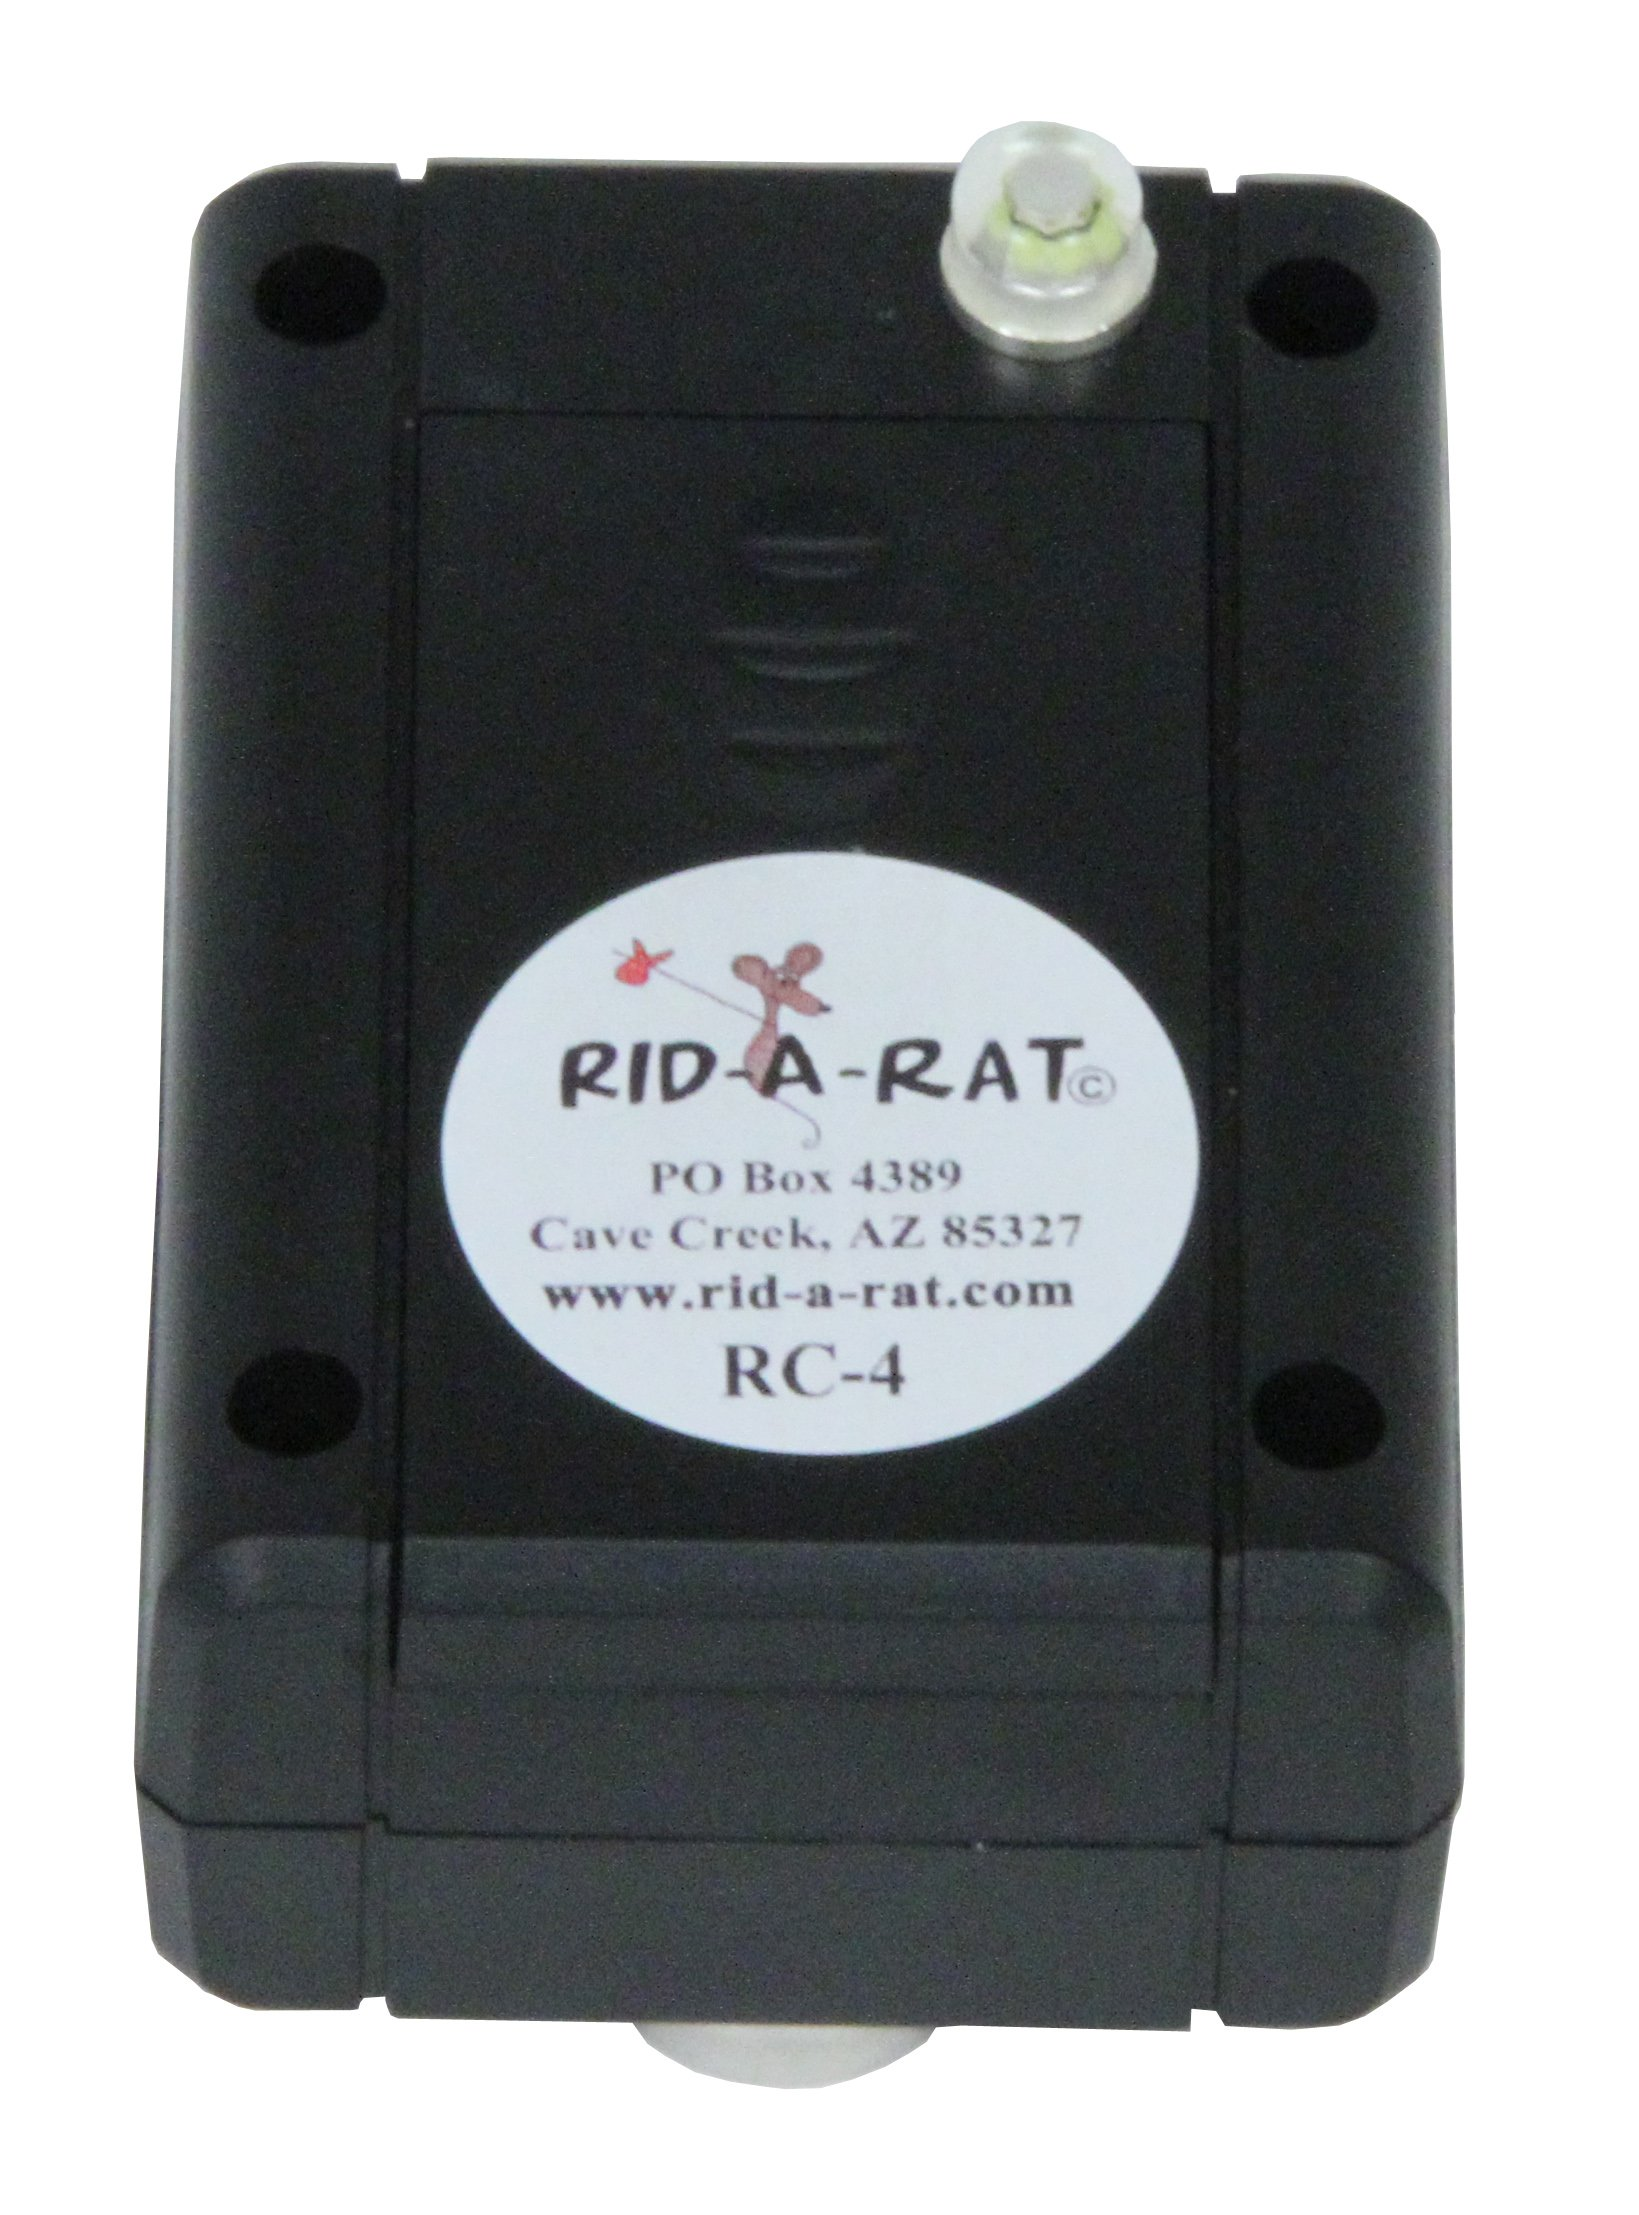 Rid-a-Rat Packrat and Rodent Deterrent Device, Model RC-4 by Rid-a-Rat